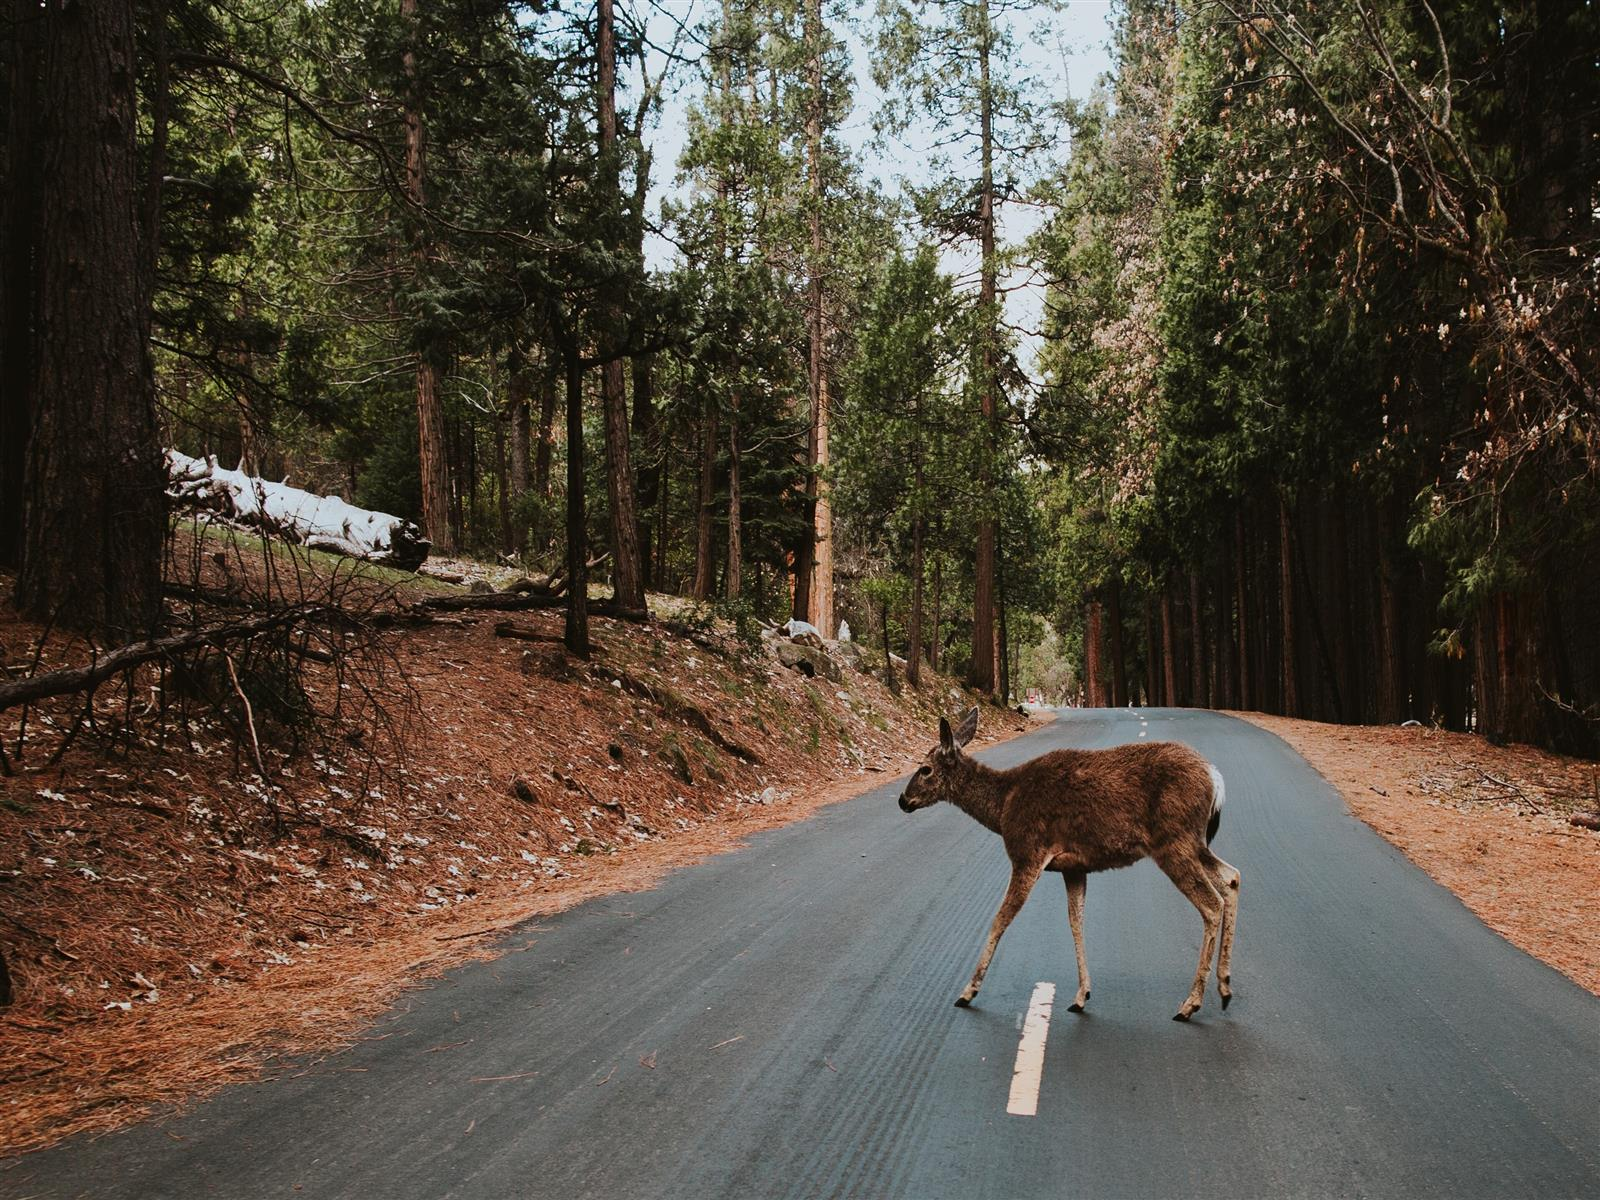 1600x1200 Deer Crossing Road in Yosemite National Park